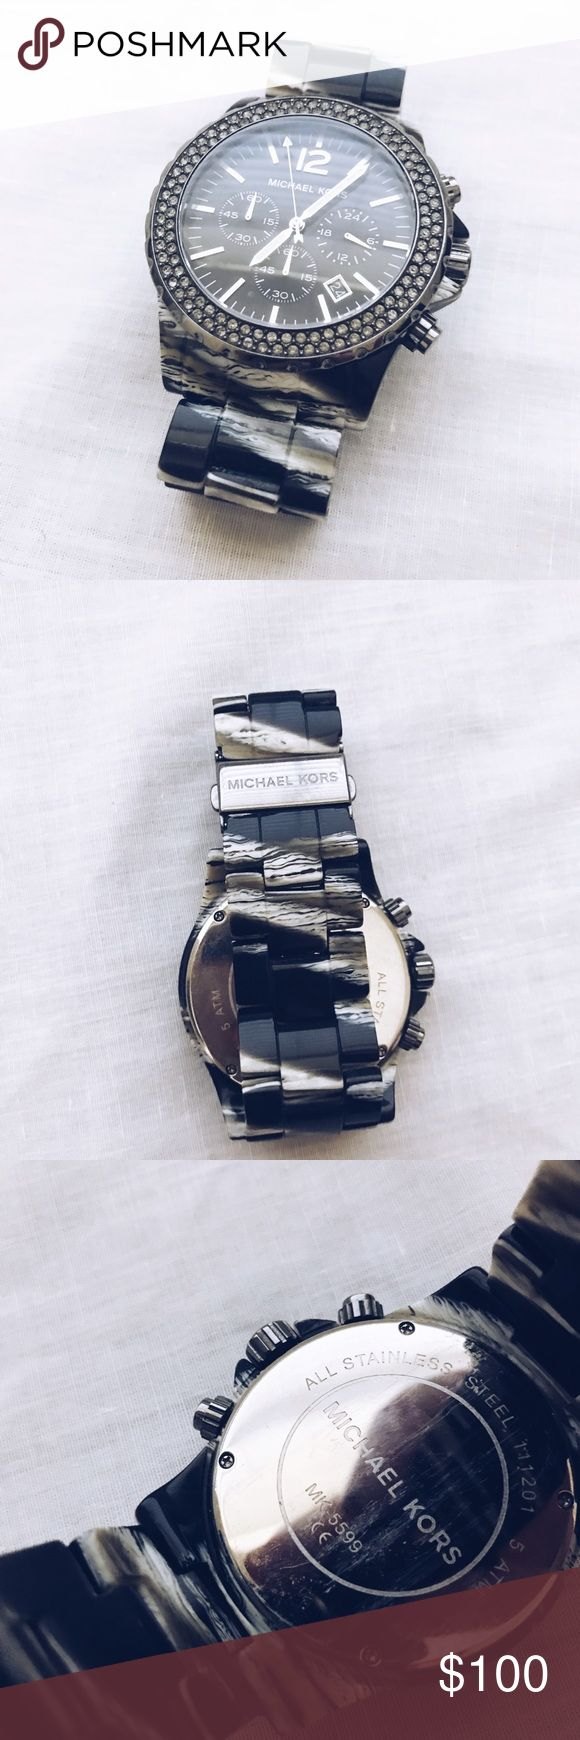 Michael Kors black marble watch Black and white Michael Kors watch in good condition. Battery needs to be replaced. Michael Kors Accessories Watches